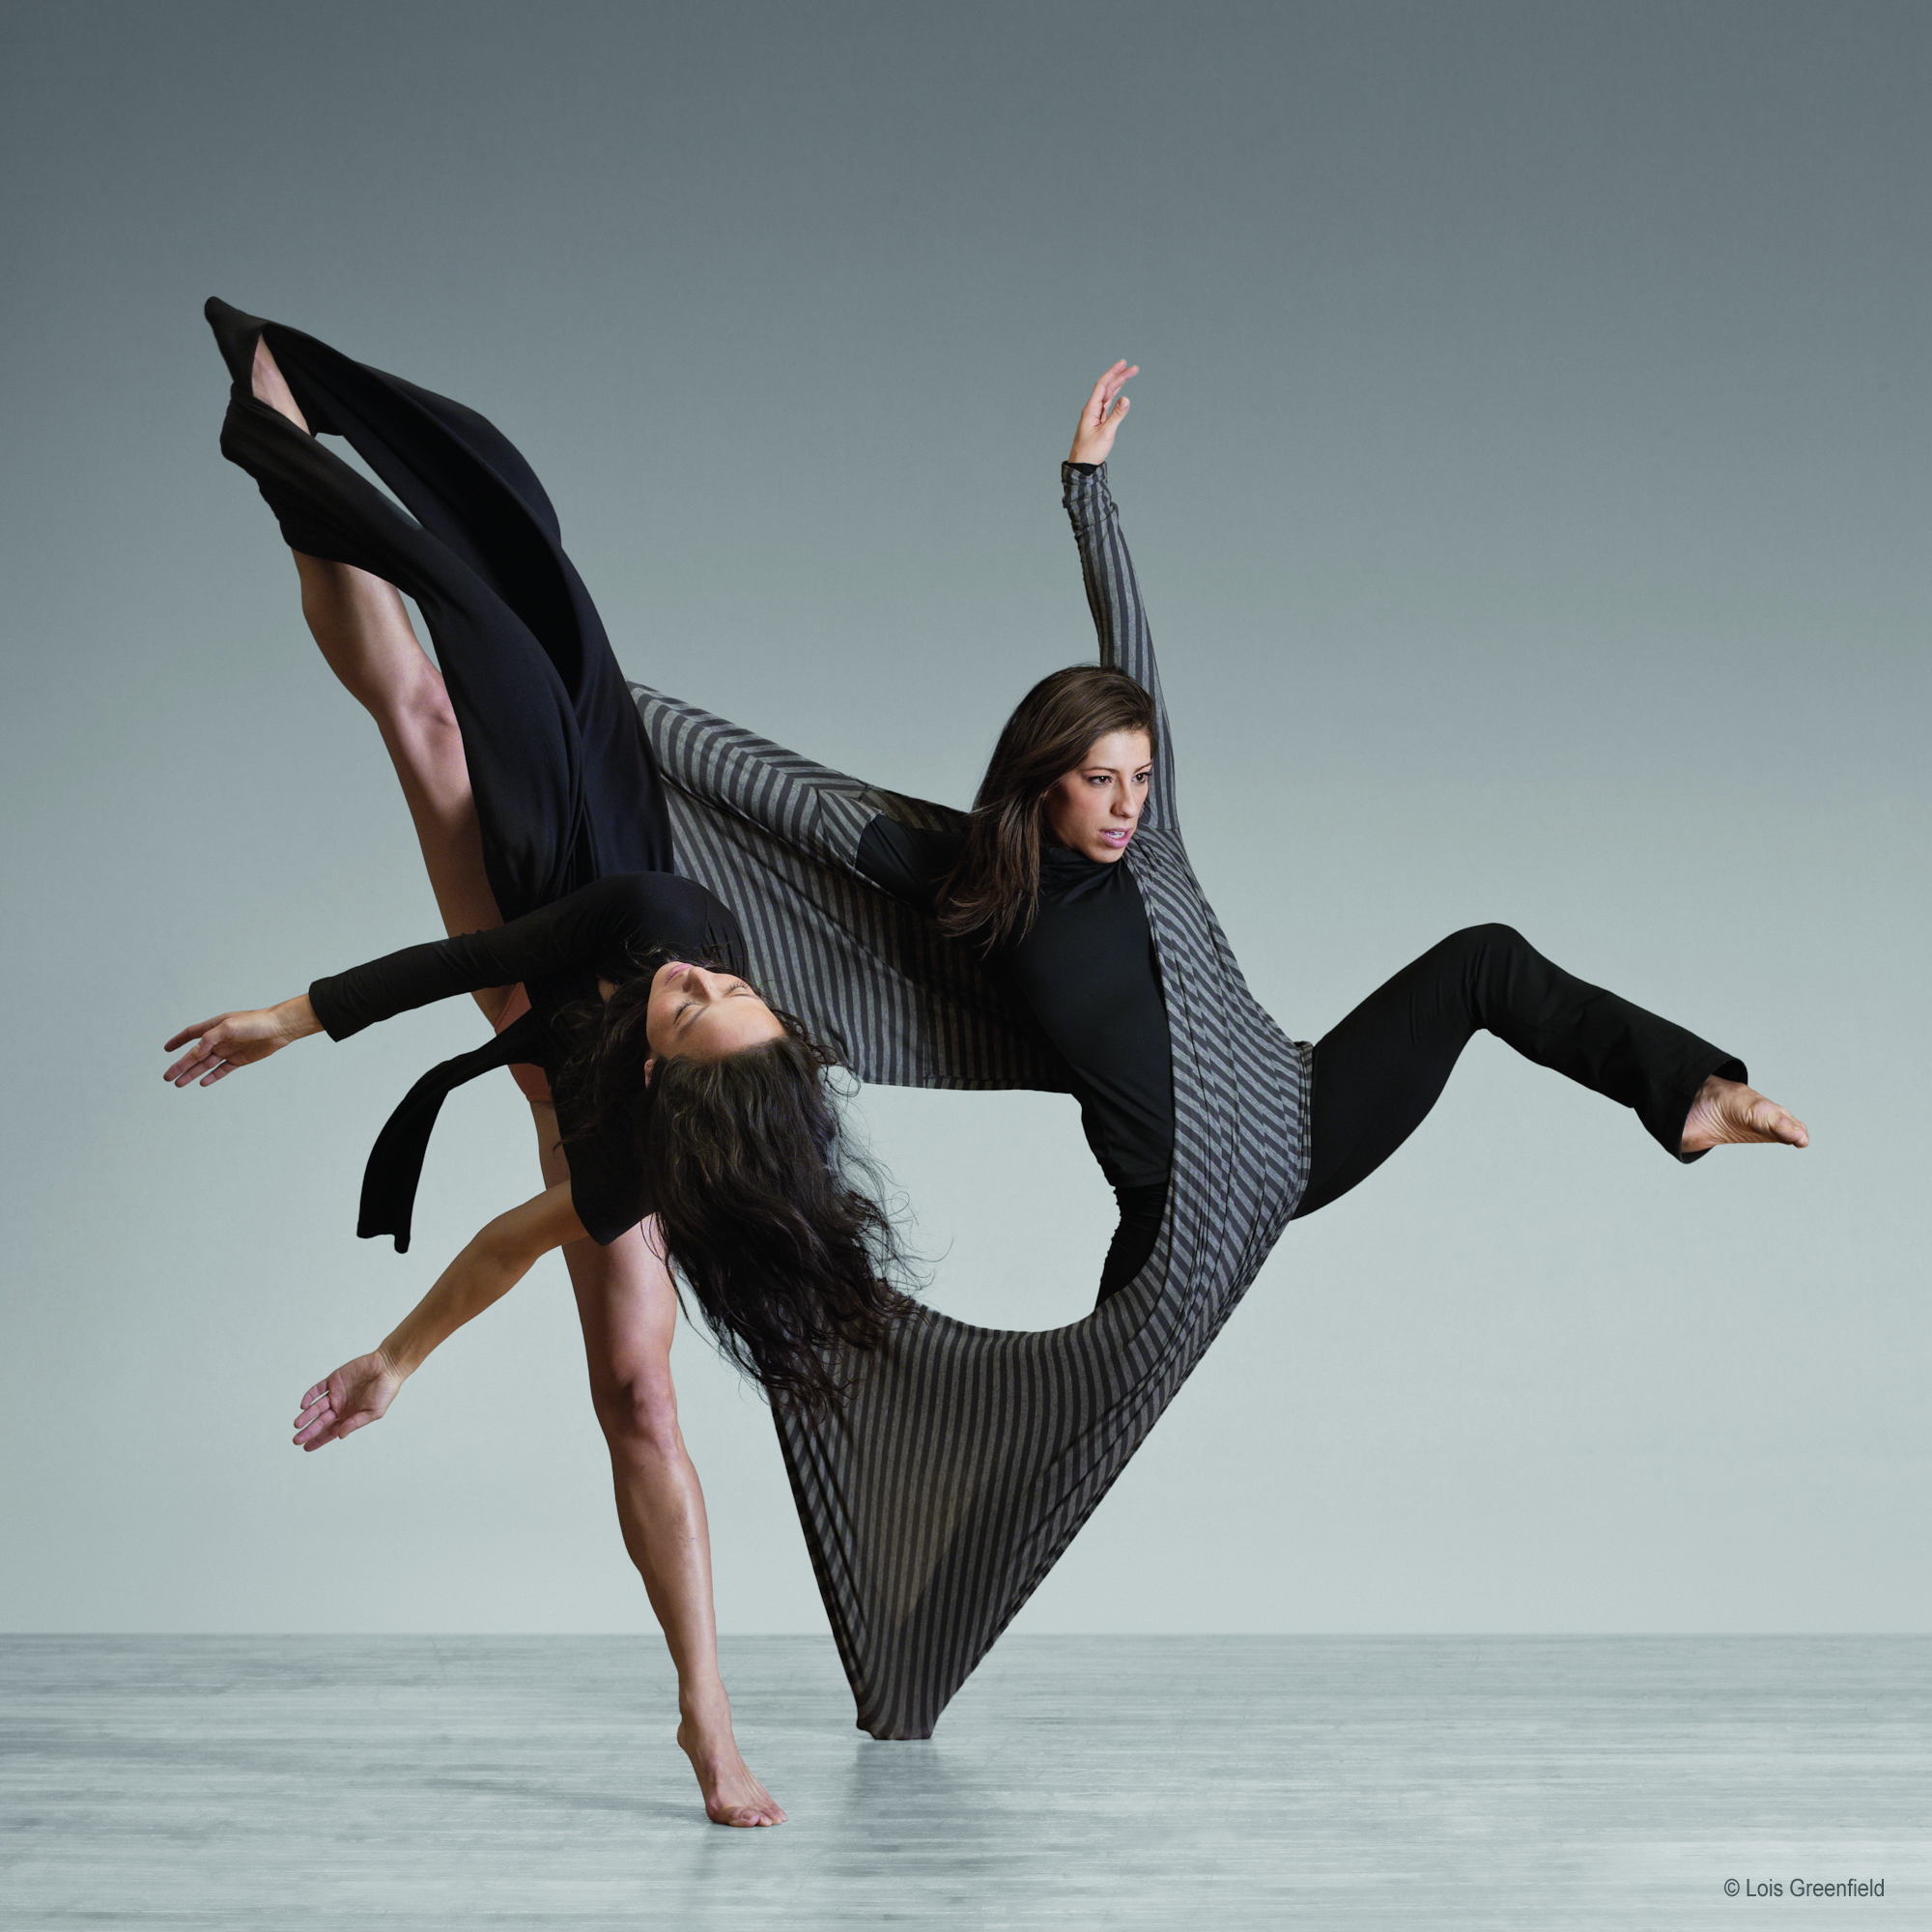 Moving Stills Interview With Lois Greenfield On Her